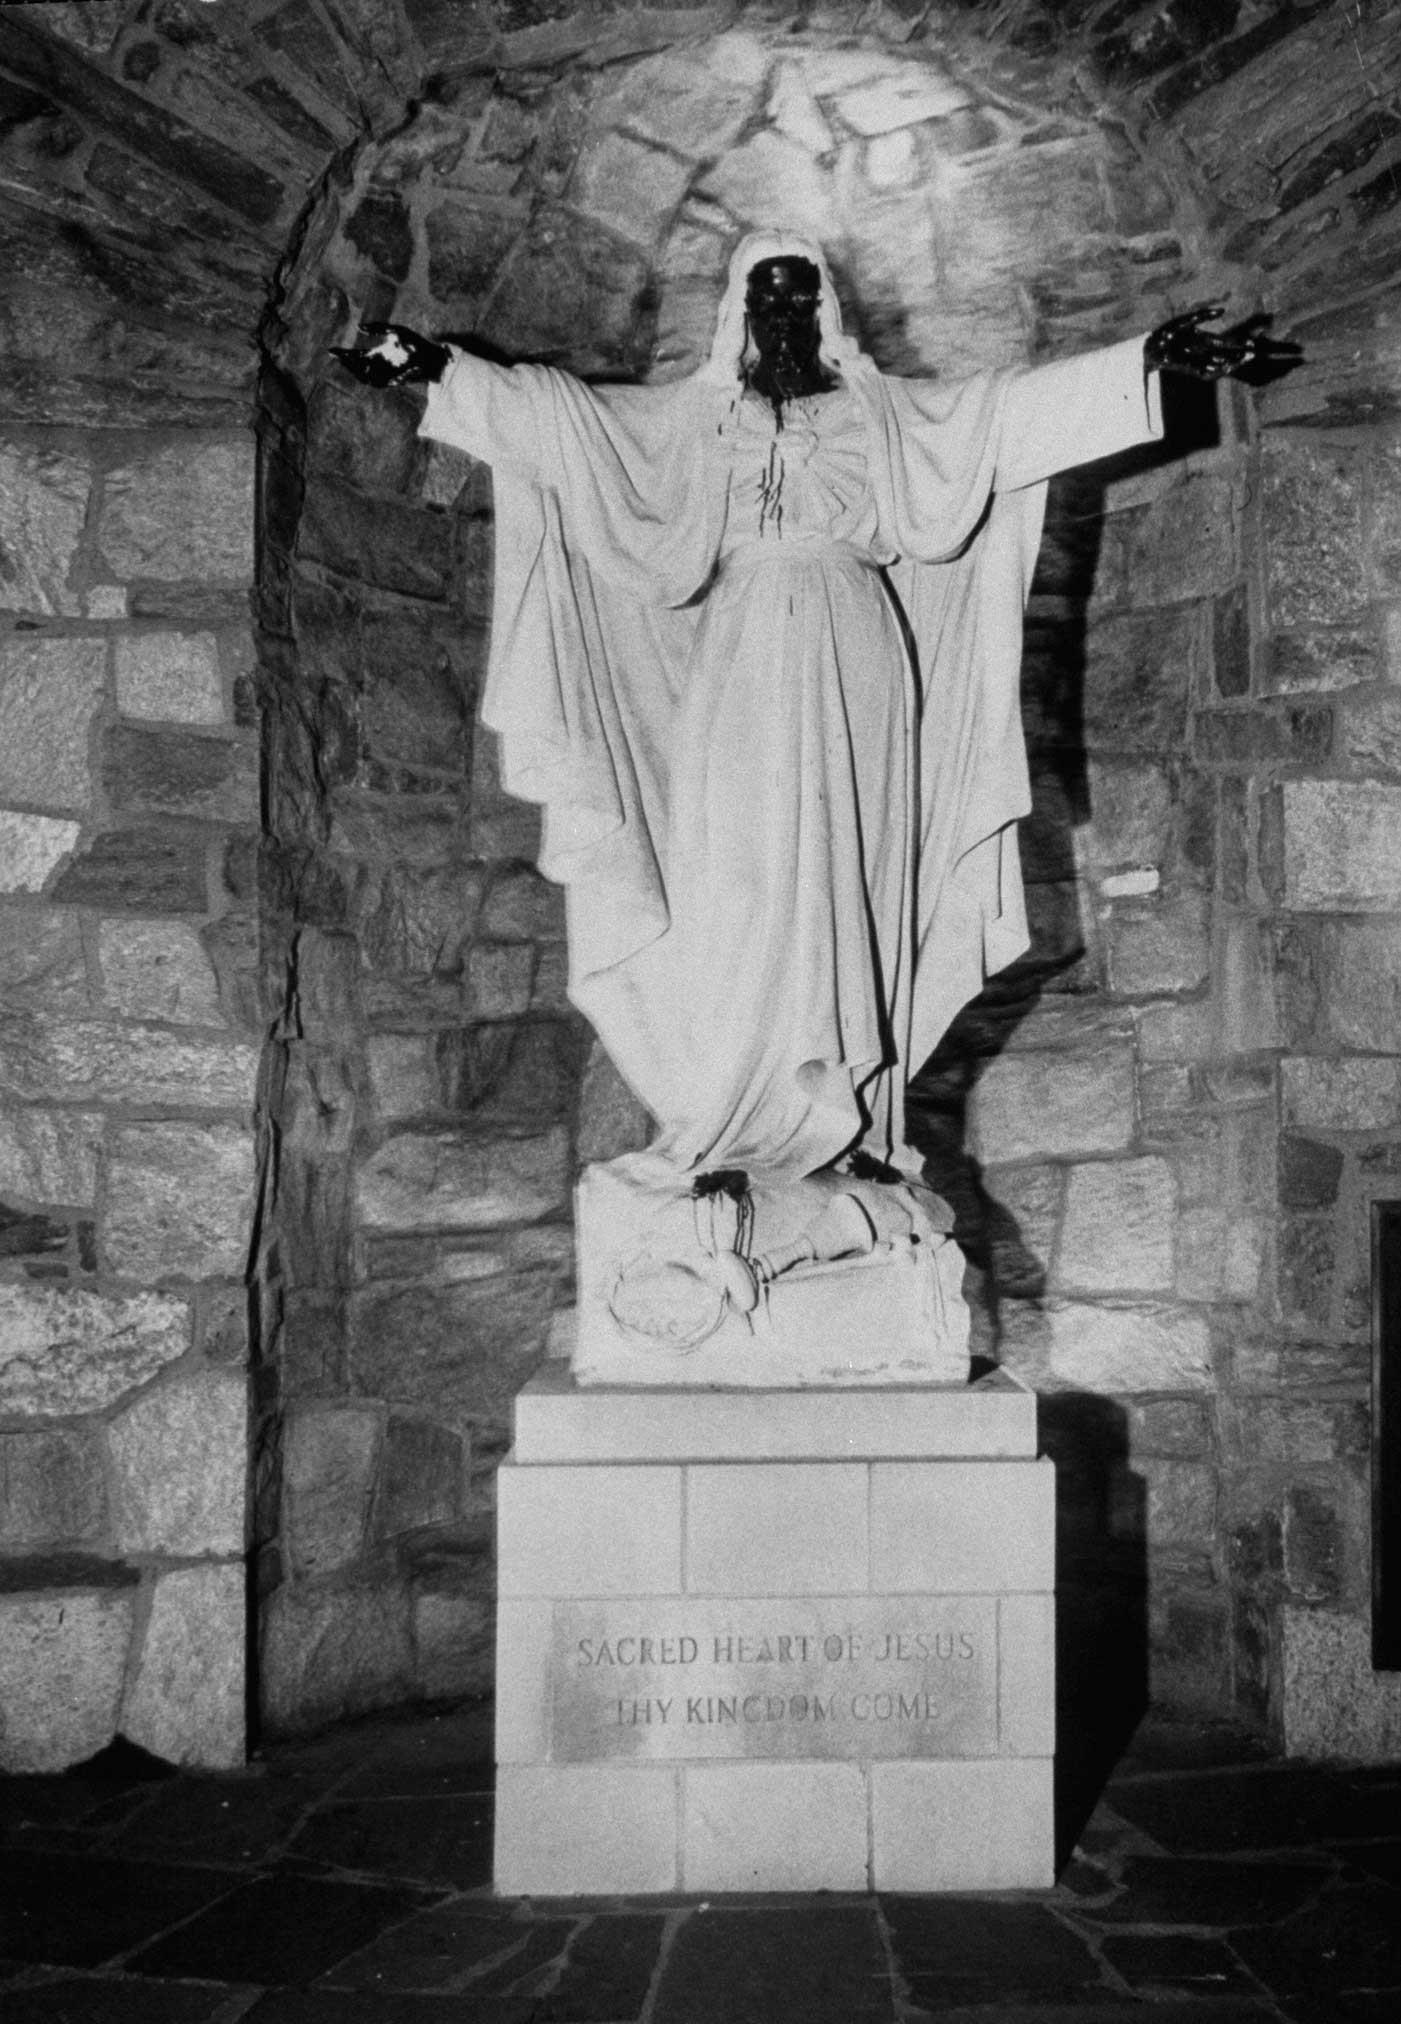 <b>Not published in LIFE.</b> Detroit, July 1967. Statue of Jesus Christ smeared with brown paint during riots.